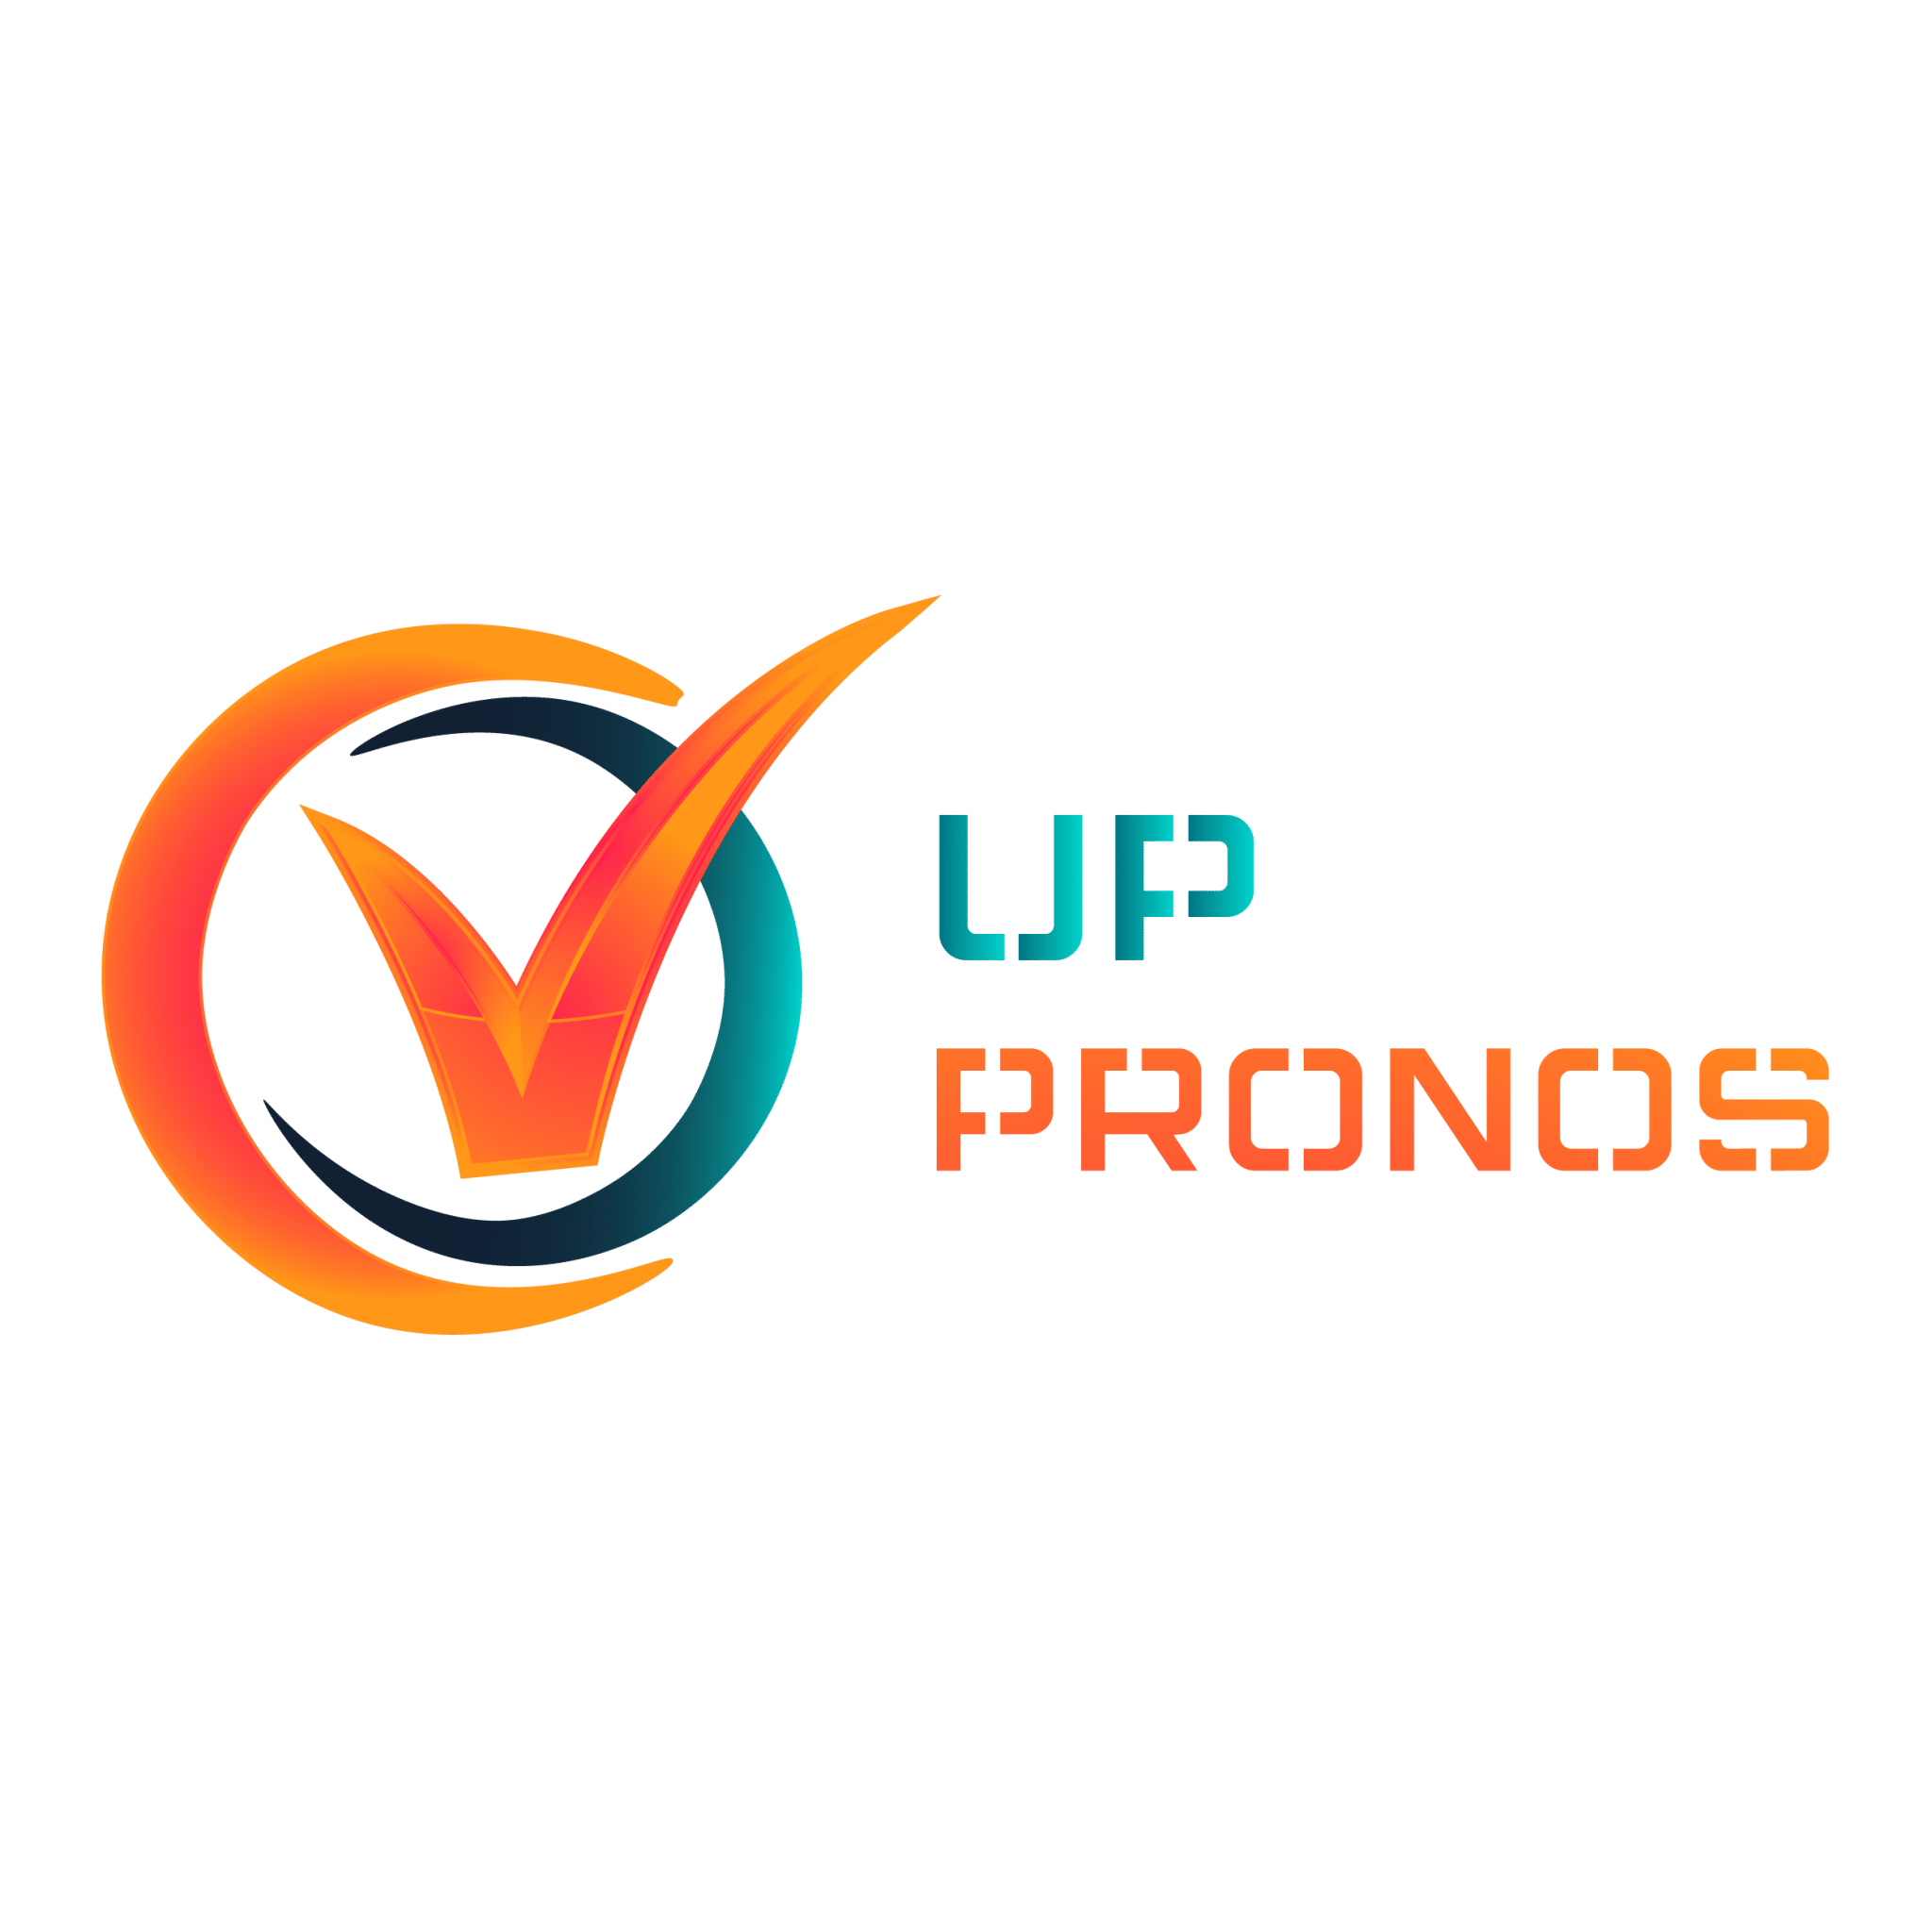 Logo UP Pronos